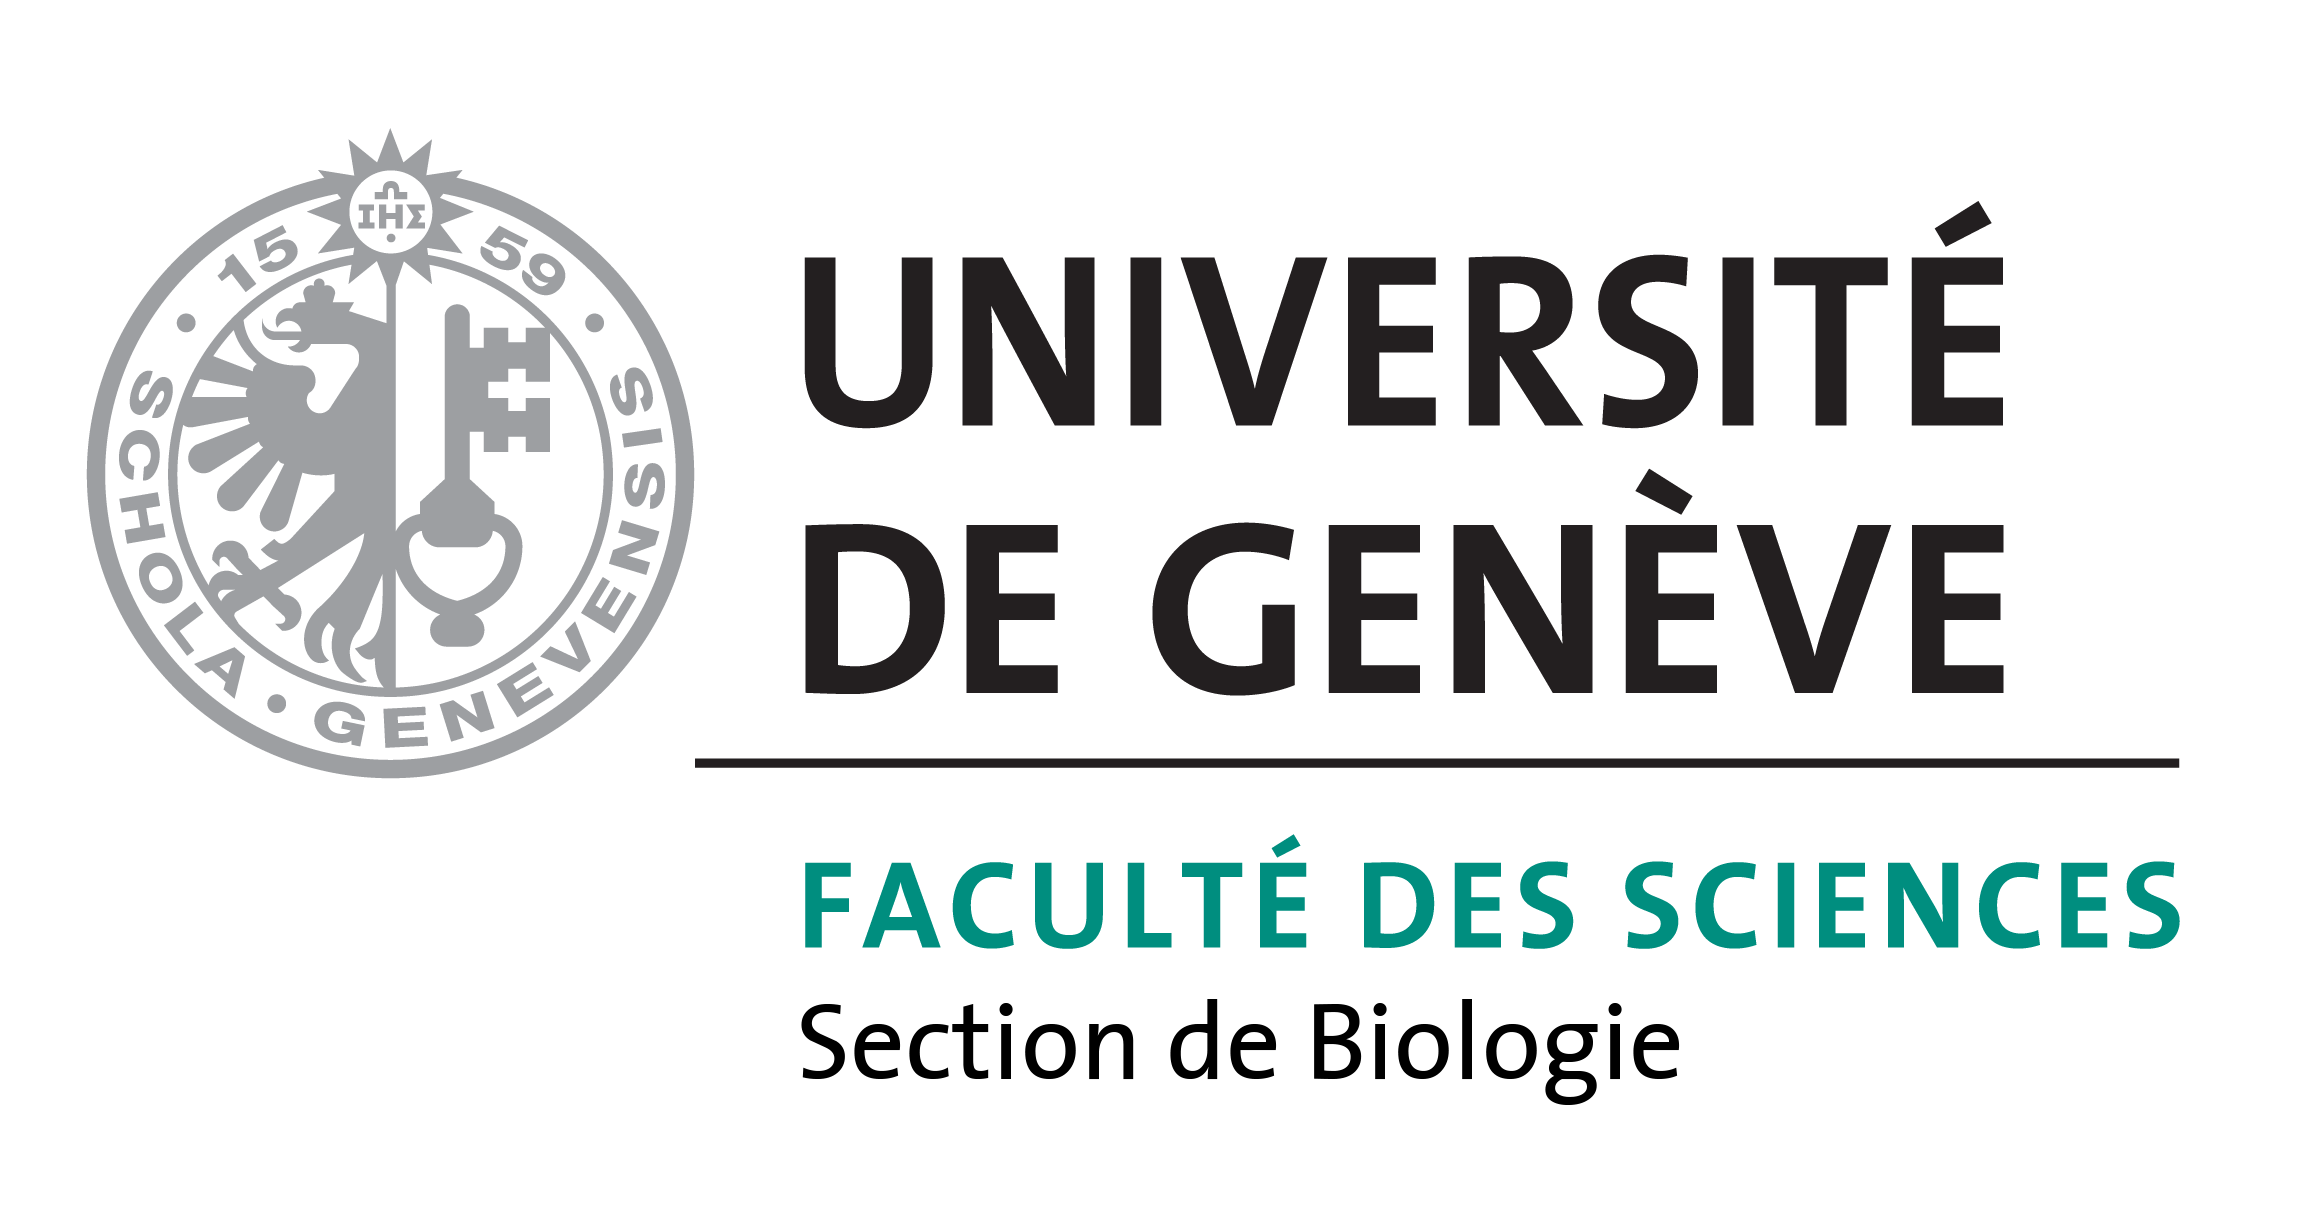 University of Geneva, Faculty of Sciences